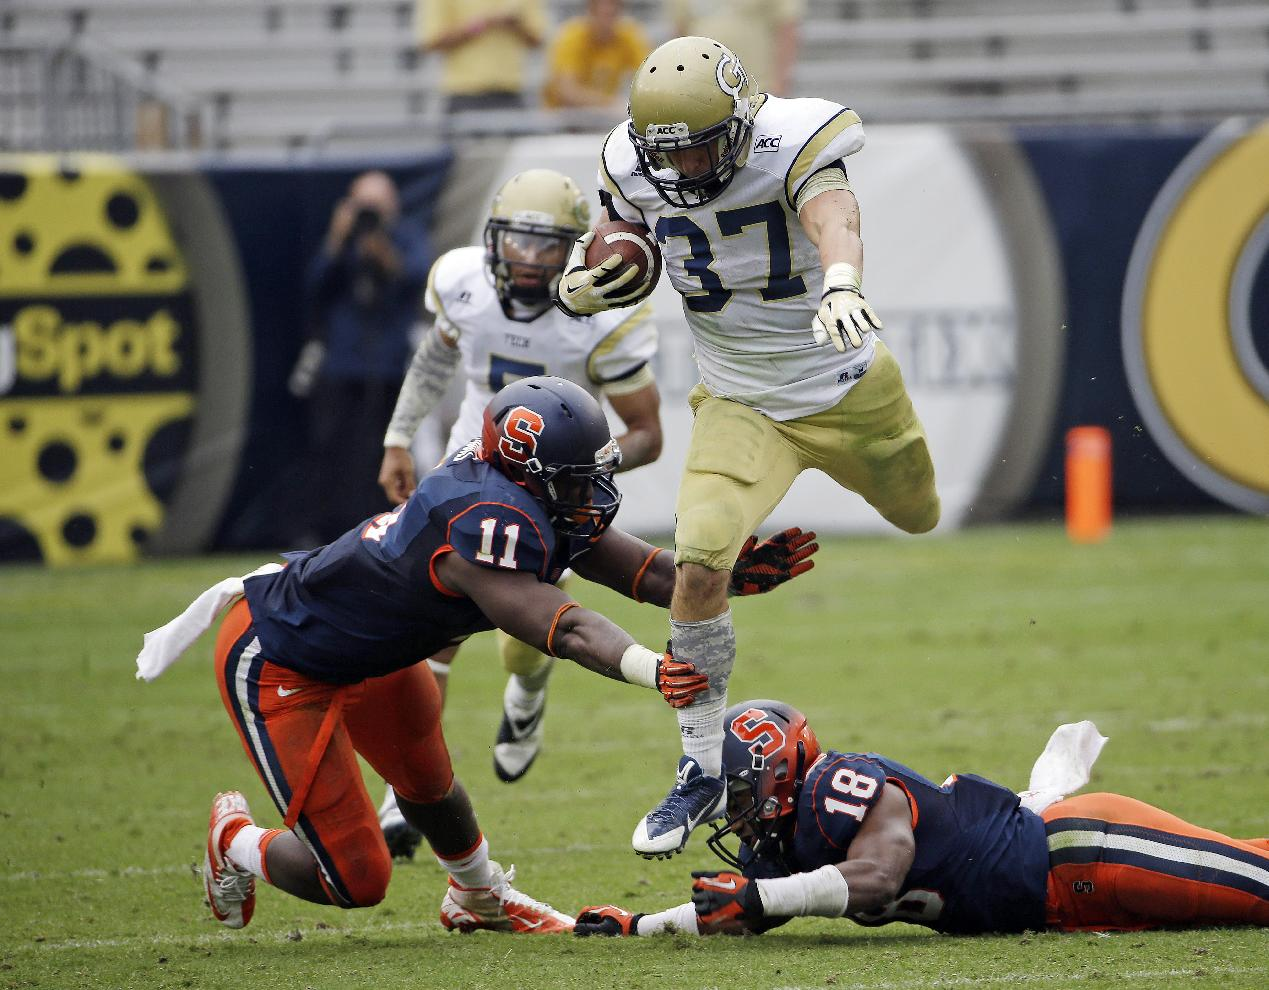 Georgia Tech running back Zach Laskey (37) gets away from Syracuse linebacker Marquis Spruill (11) and defensive back Darius Kelly (18) in the second half of an NCAA college football game Saturday, Oct. 19, 2013, in Atlanta. Tech won 56-0